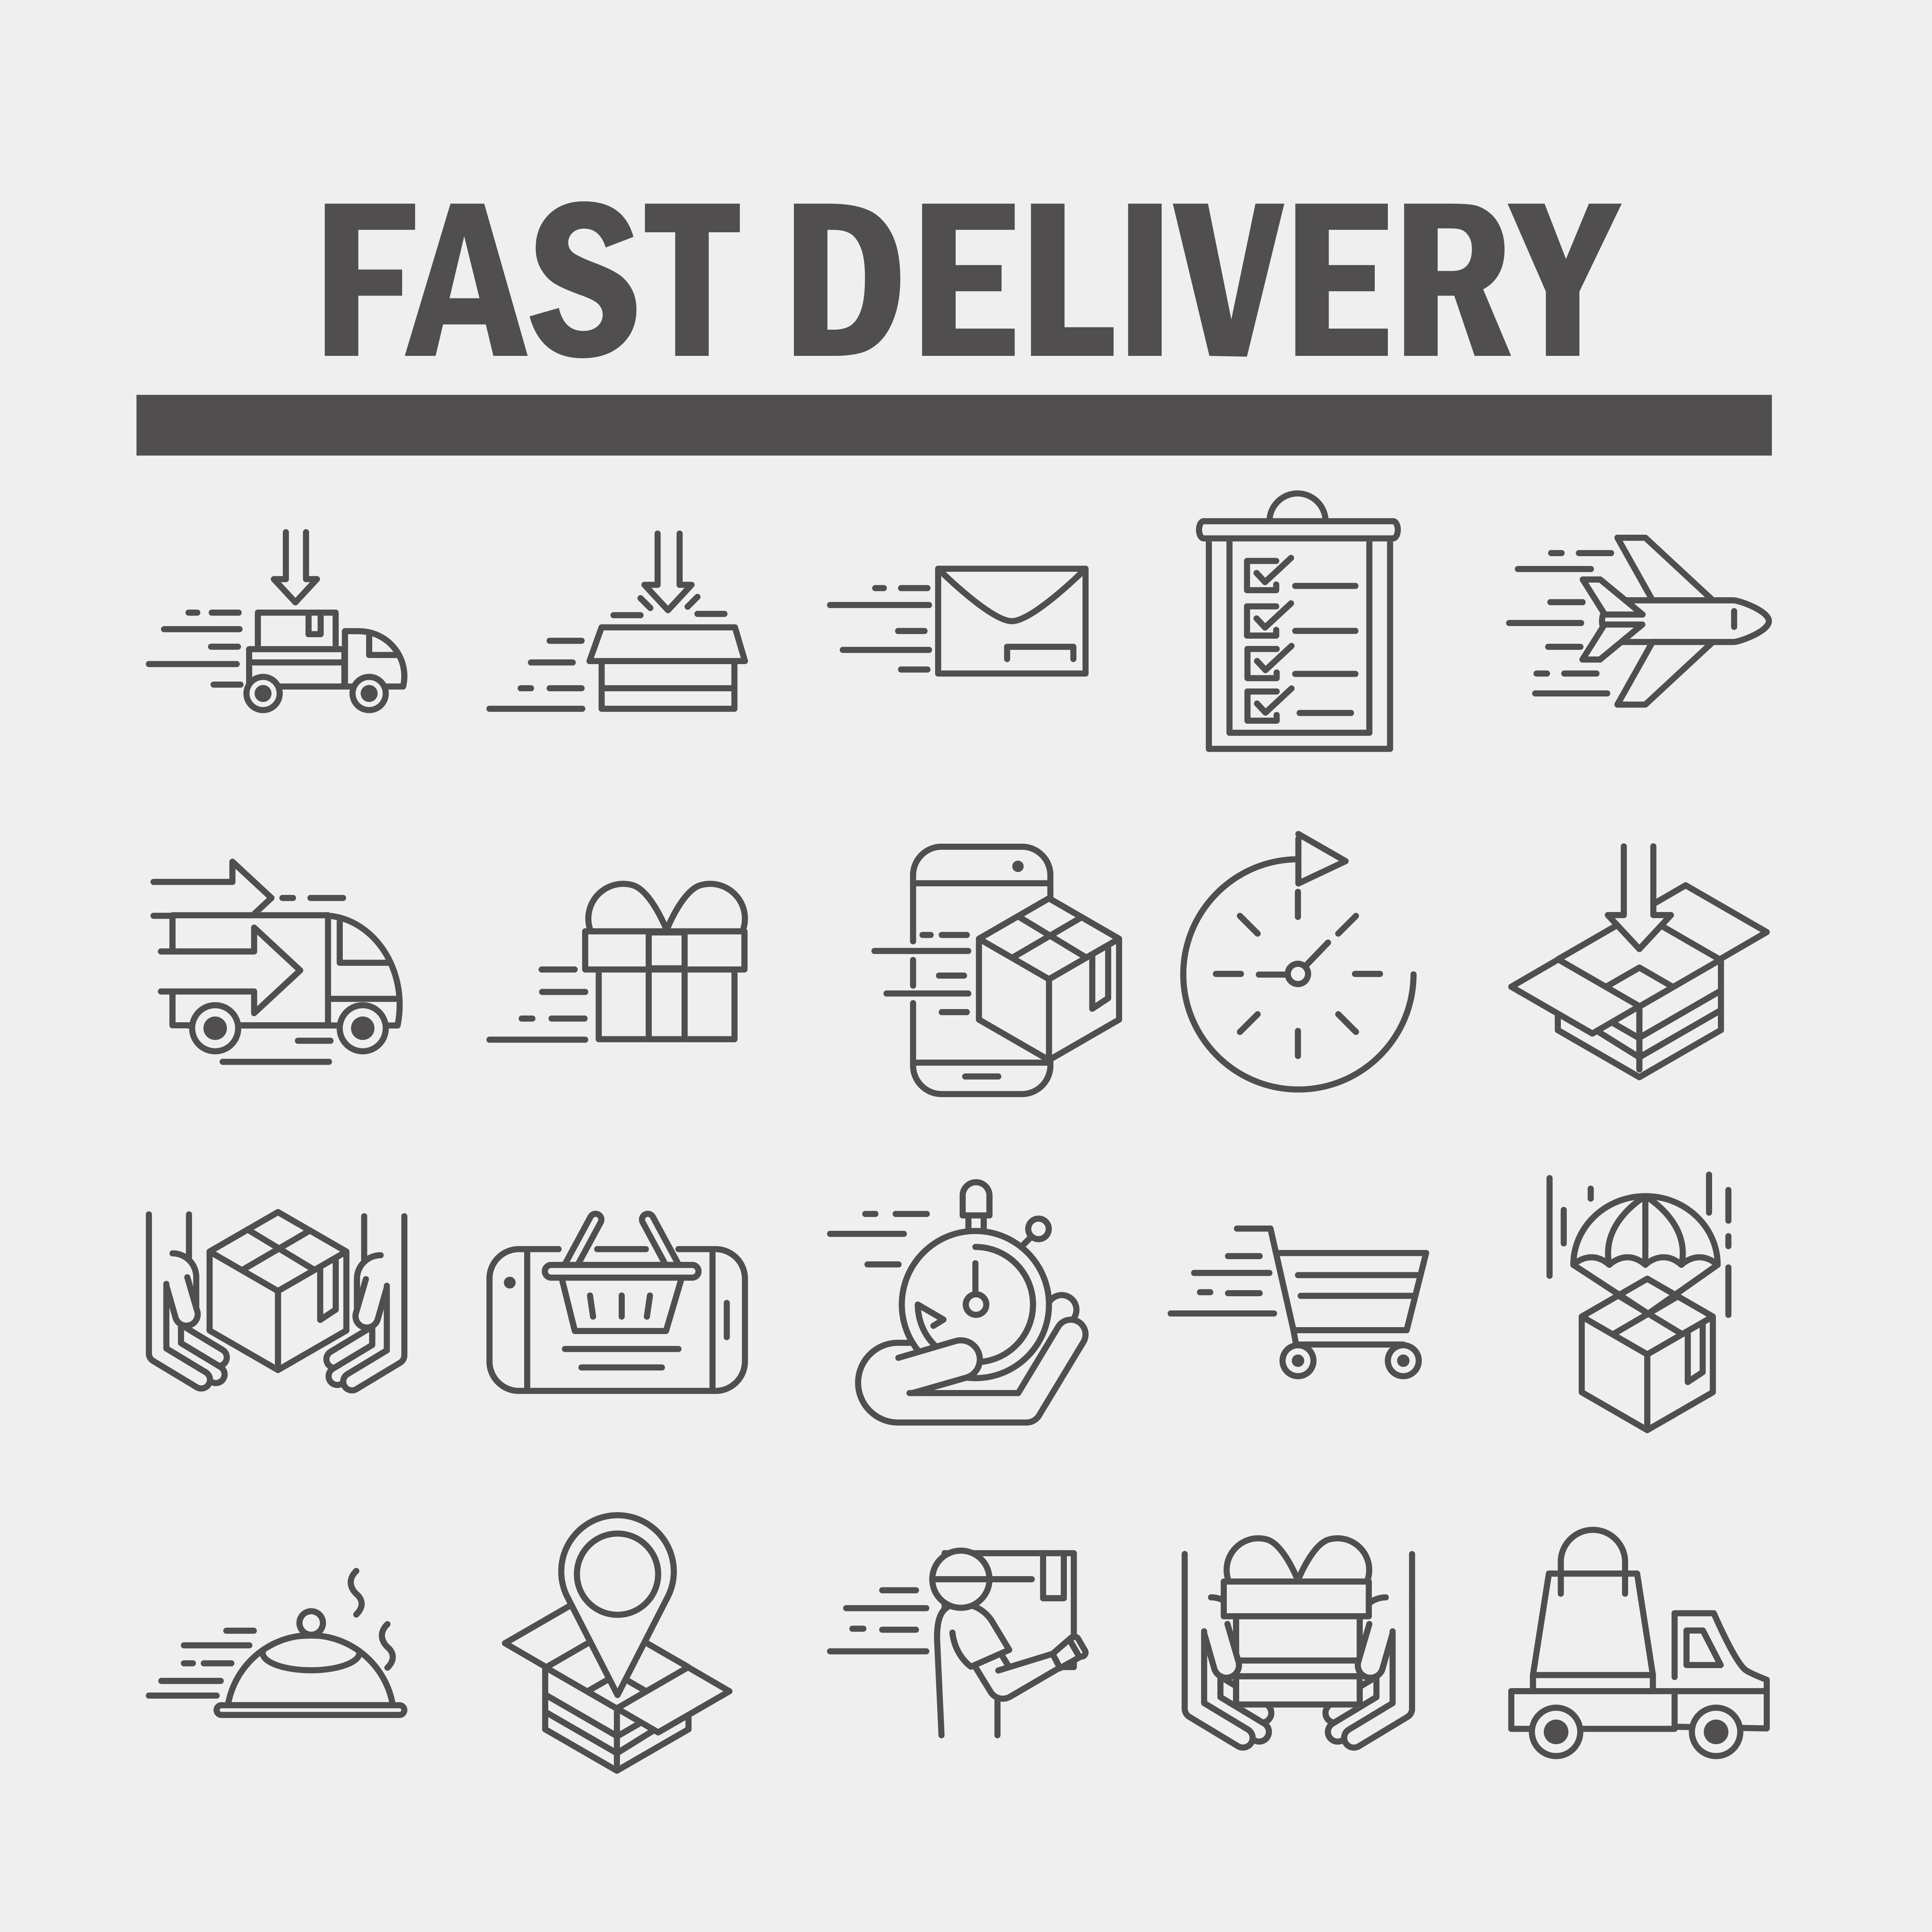 Express and fast delivery icon set